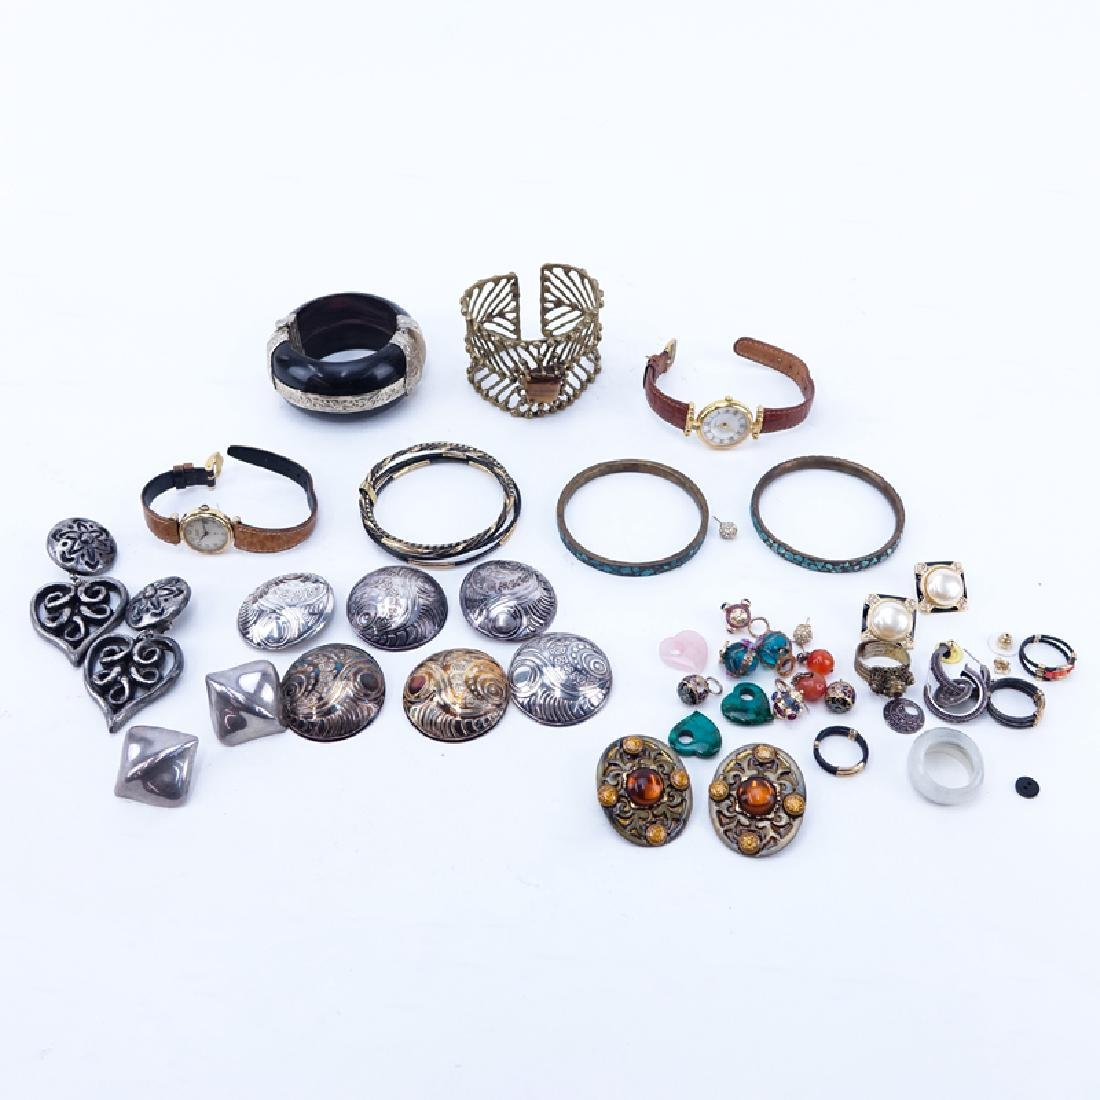 Lot of Costume Jewelry and Watches. Includes: Earrings,